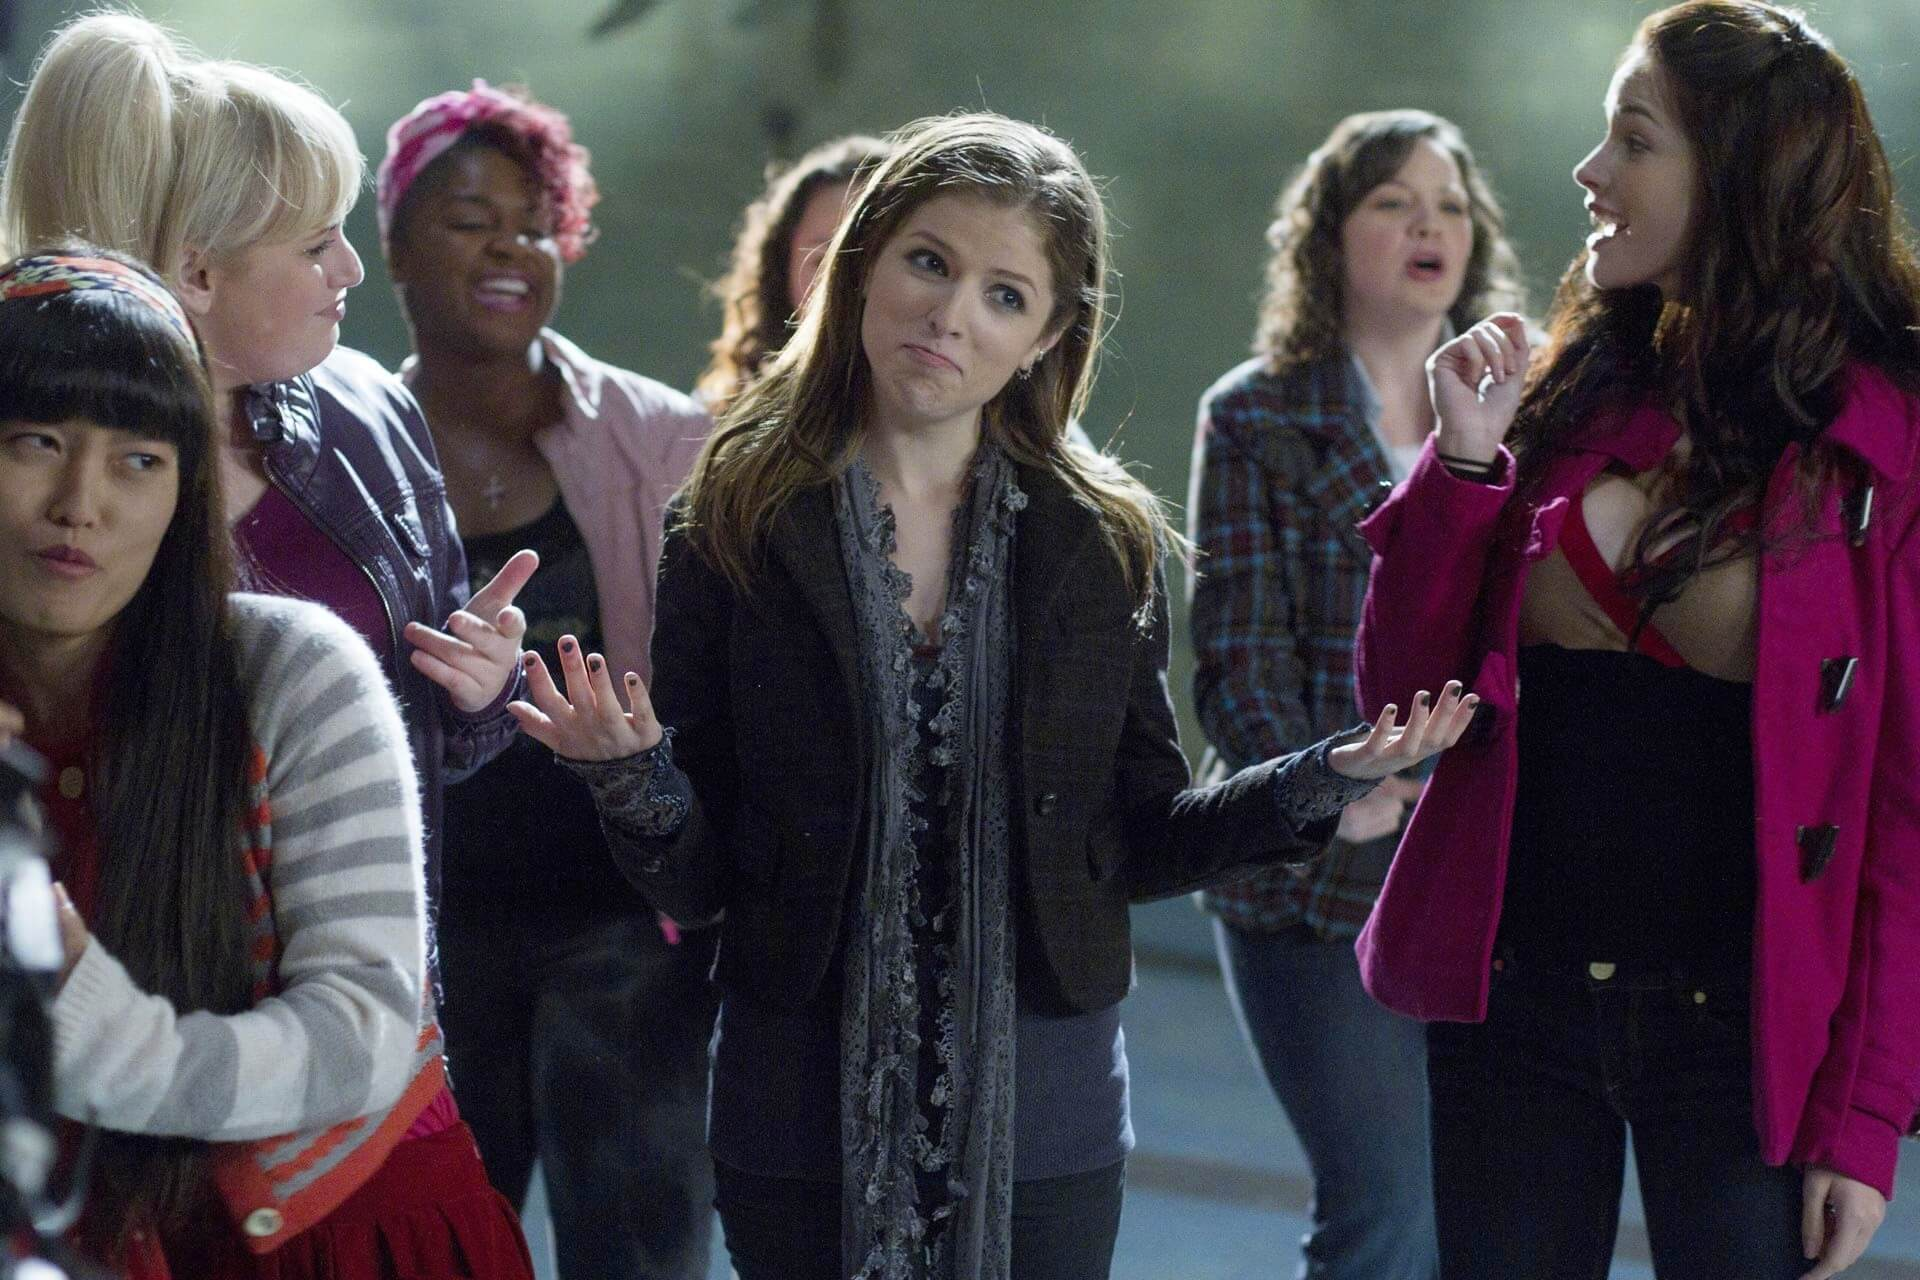 pitch-perfect-ana-kendrick-jason-moore-movie-2012